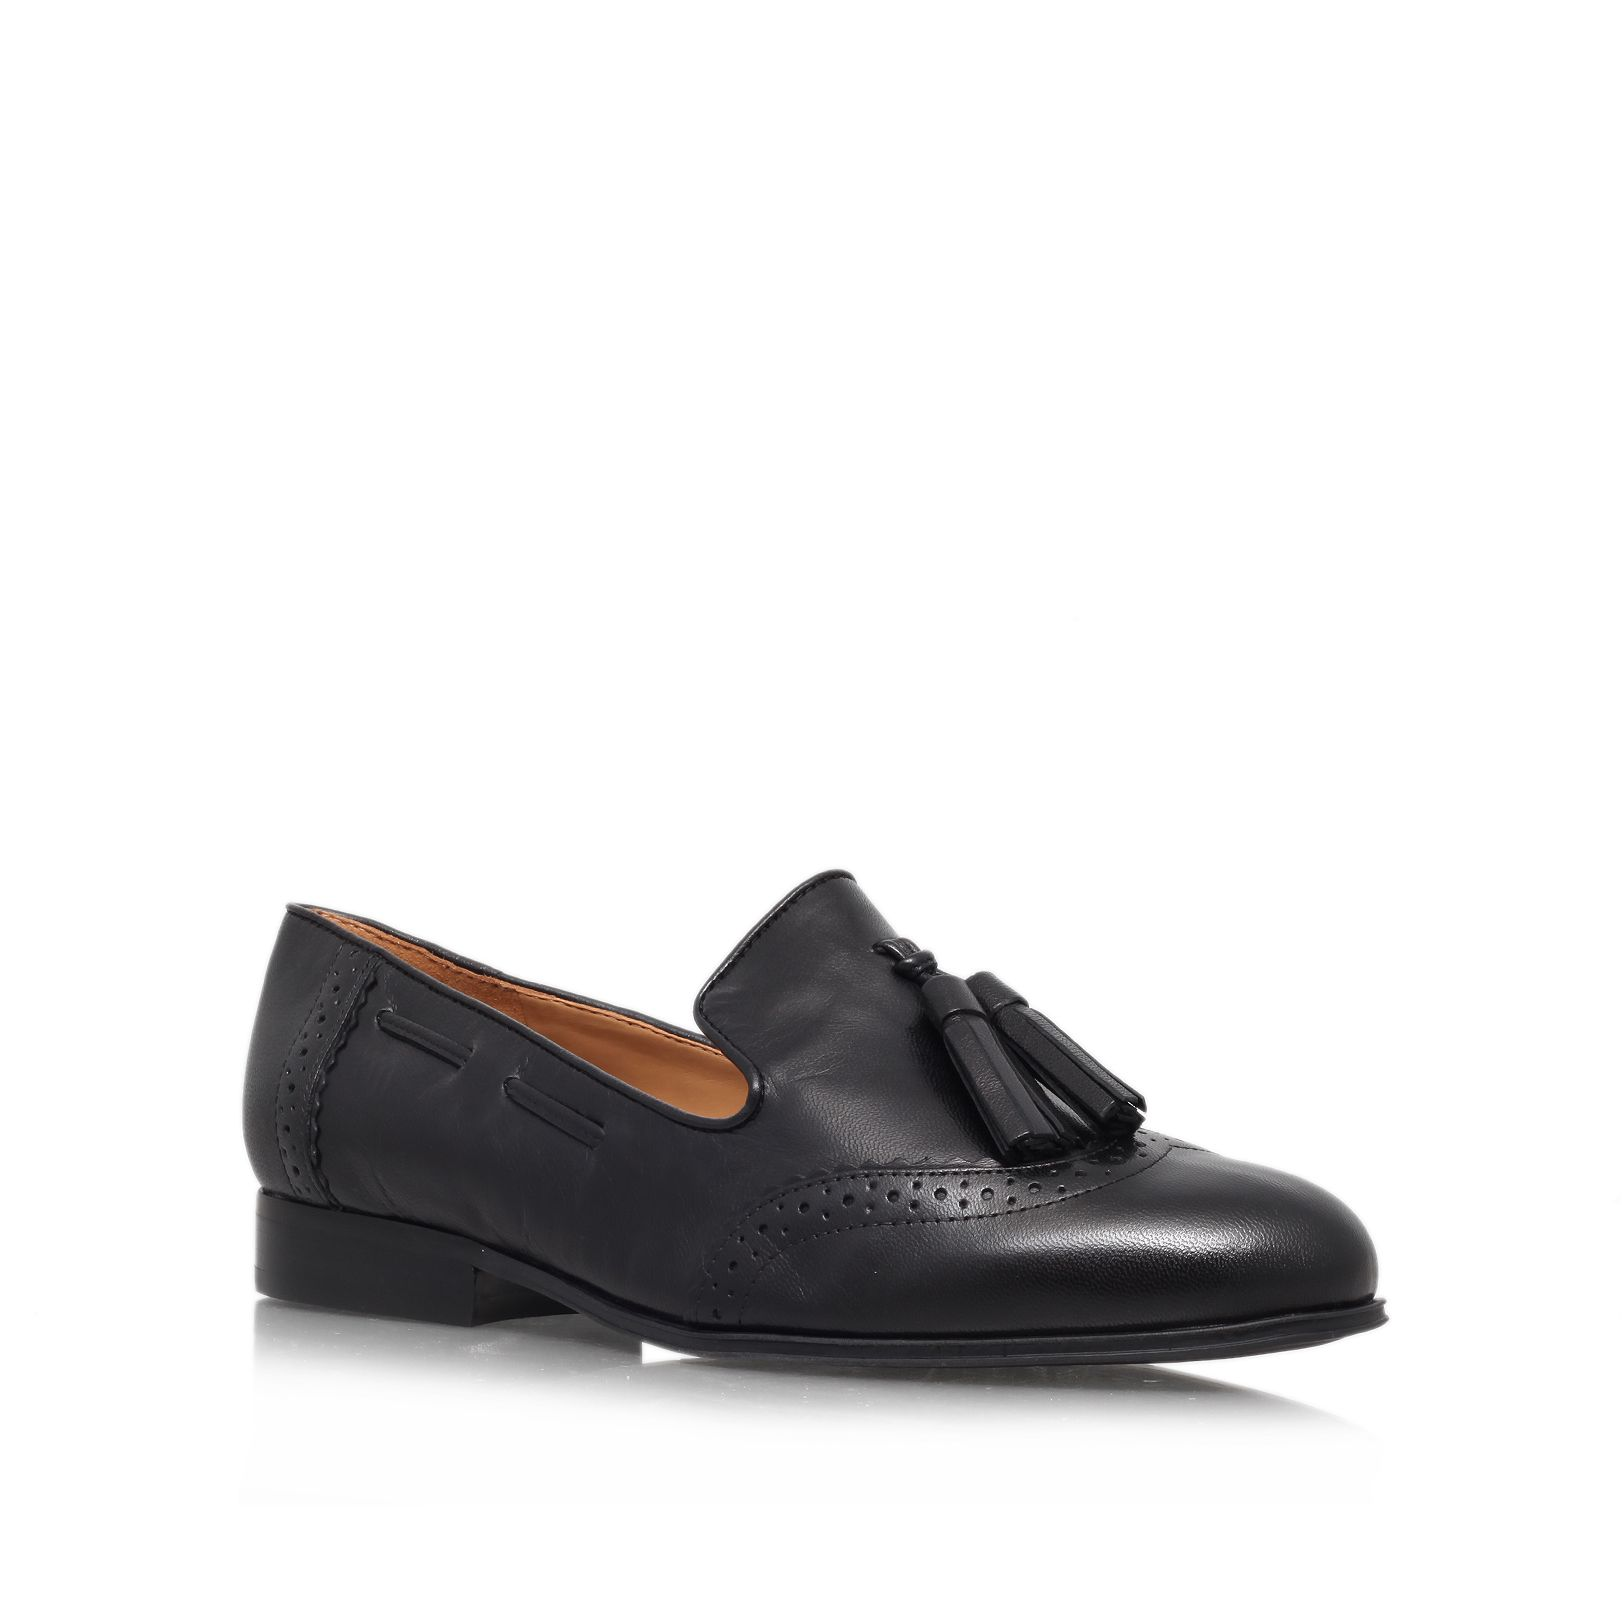 Ariel flat leather loafers